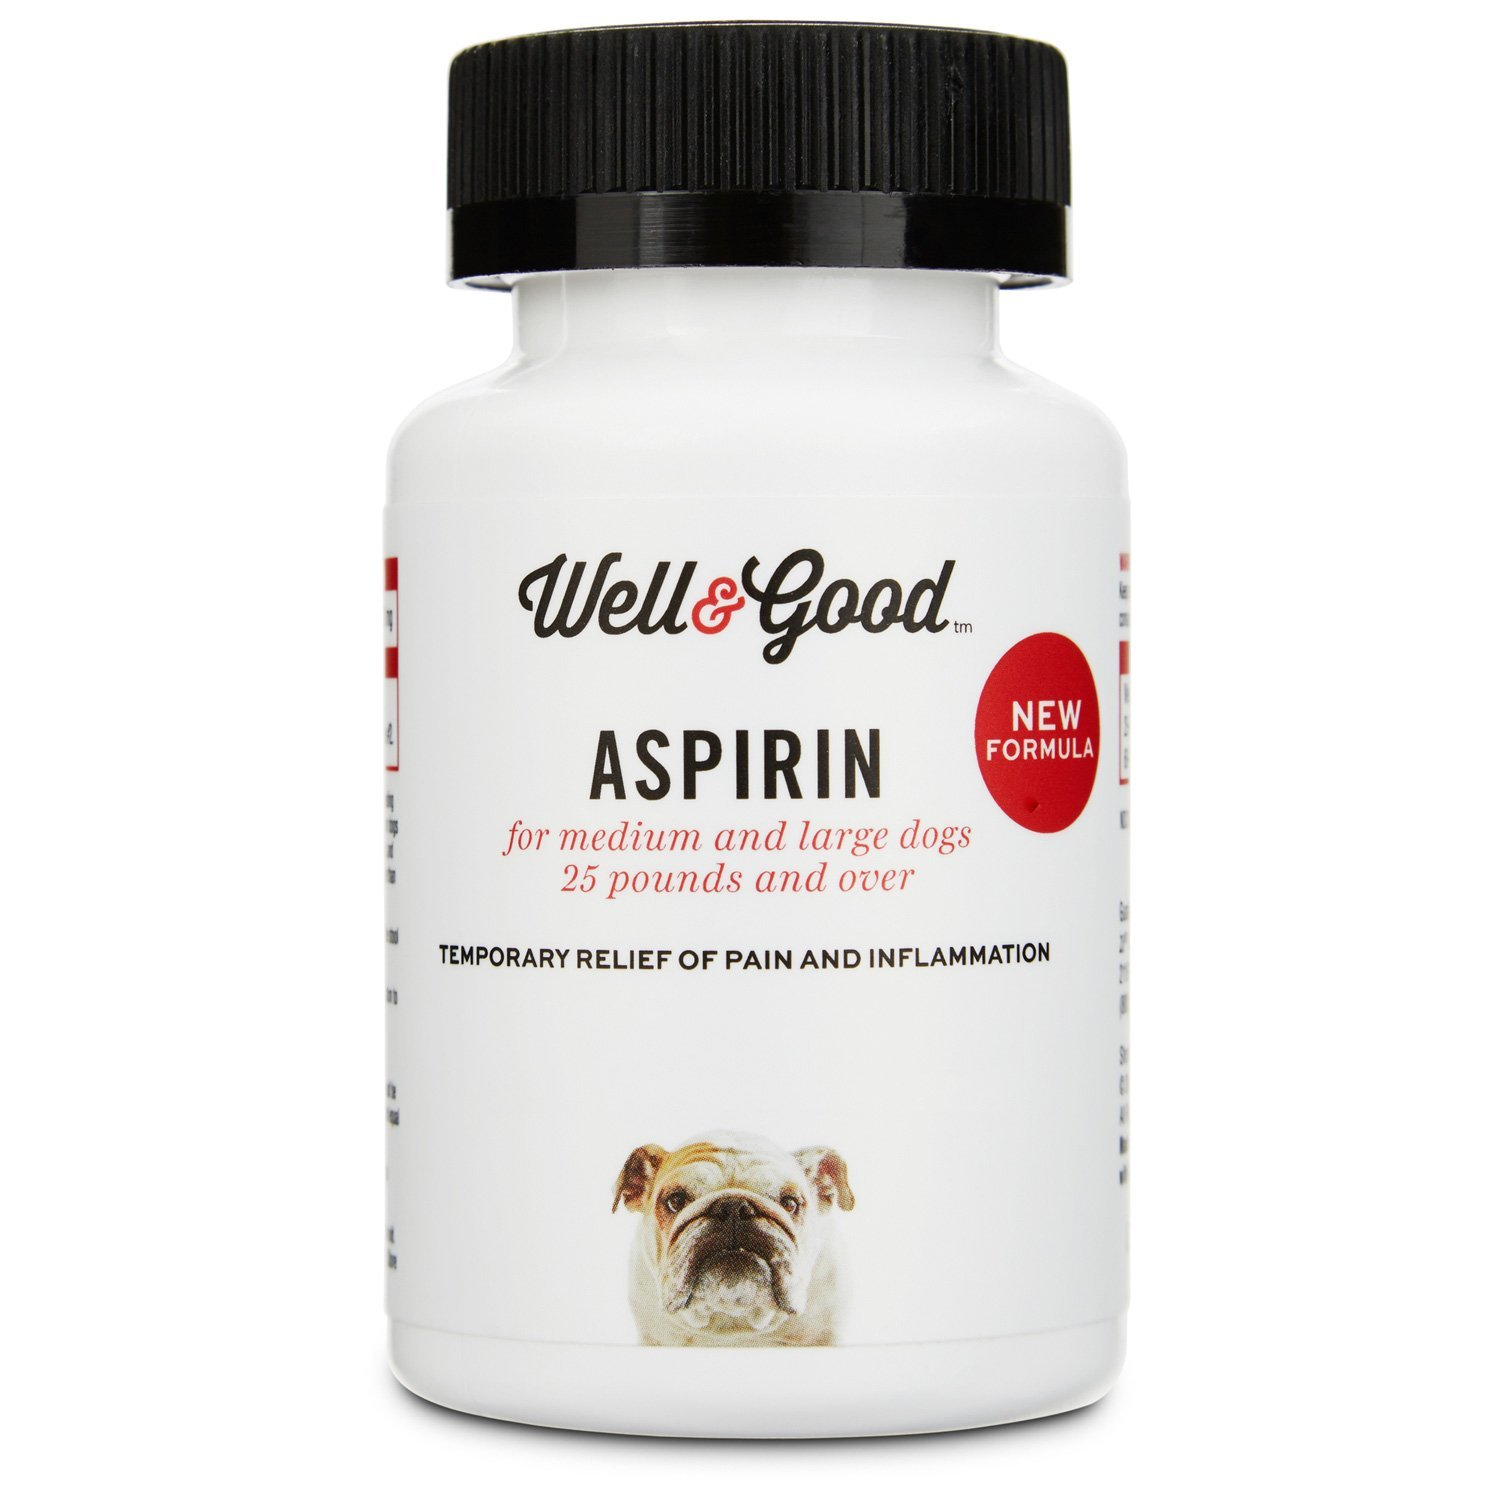 Well & Good Dog Aspirin, 75 Tablets, for Large Dogs by Well & Good